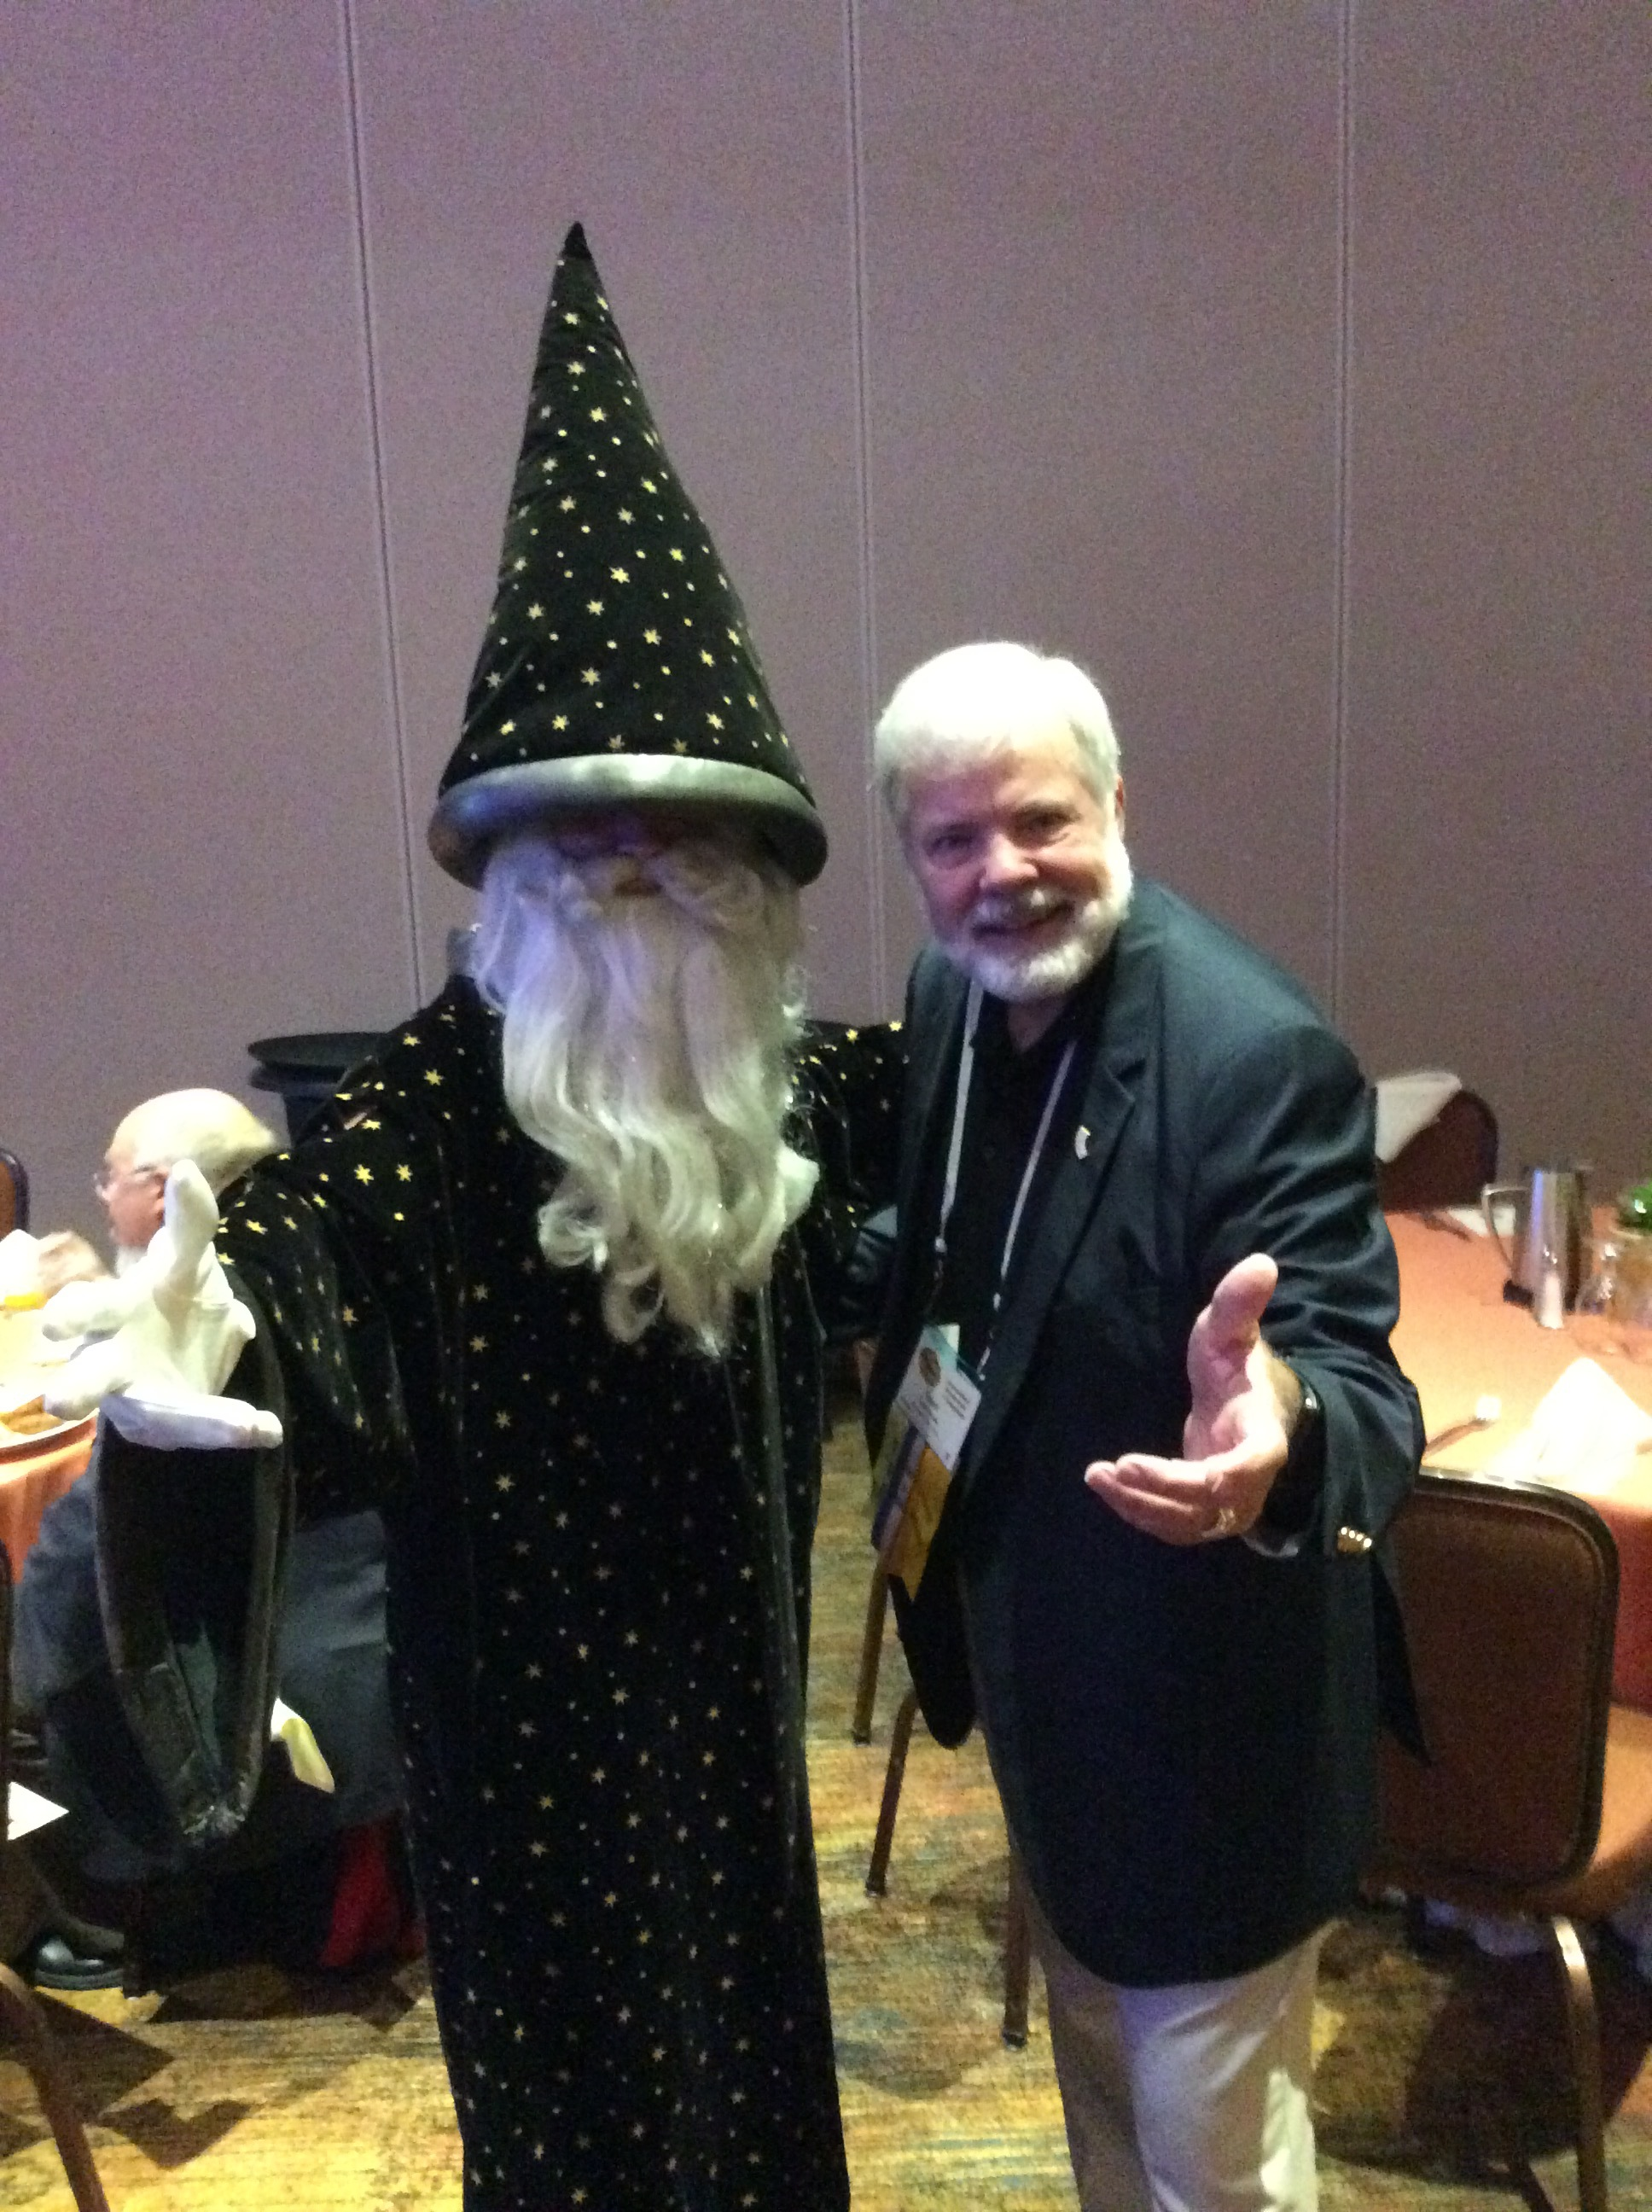 Merlin and the Wizard